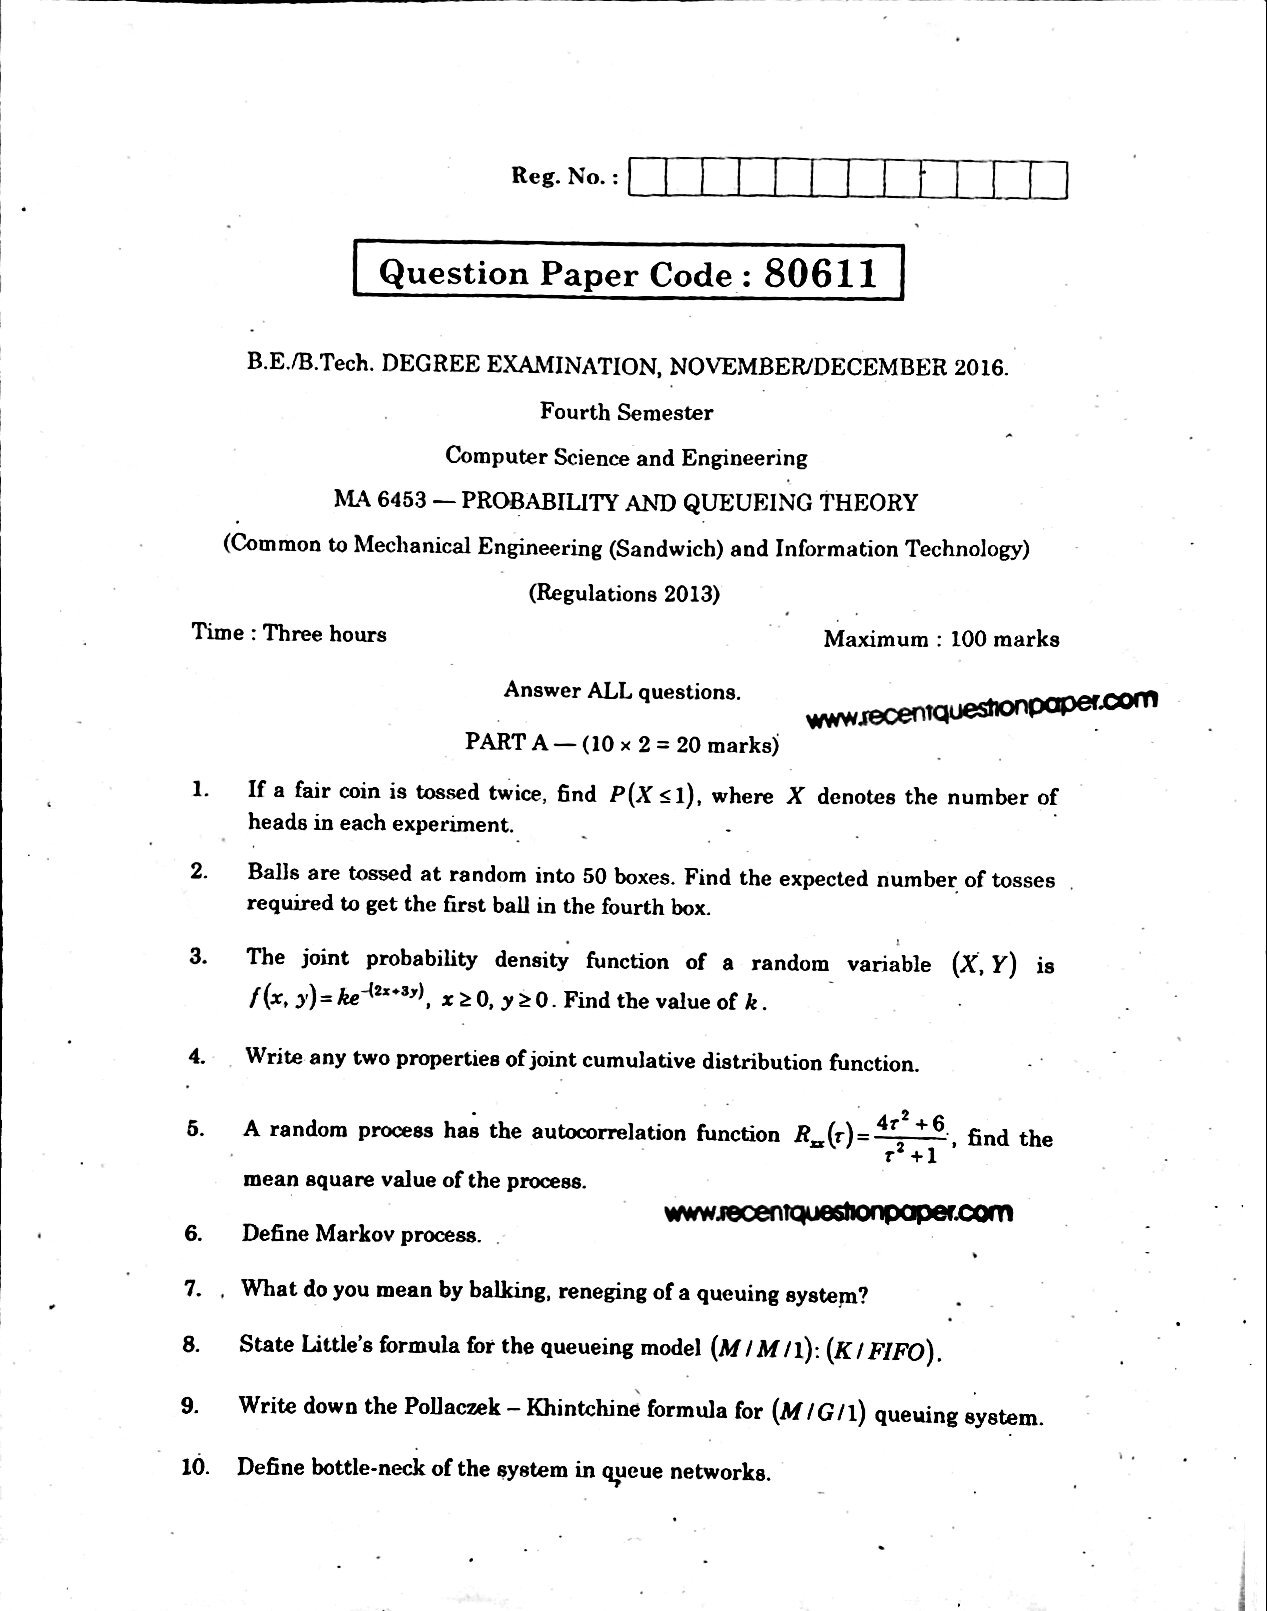 MA6543-Probability-and-Queueing-Theory-Anna University-Question-paper-Nov/Dec-2016, MA6543-Probability and Queueing Theory Anna University Question paper Nov/Dec 2016 Pdf, MA6543 Anna University Question paper nov/dec 2016,Probability and Queueing TheoryAnna University Question paper Nov/Dec 2016